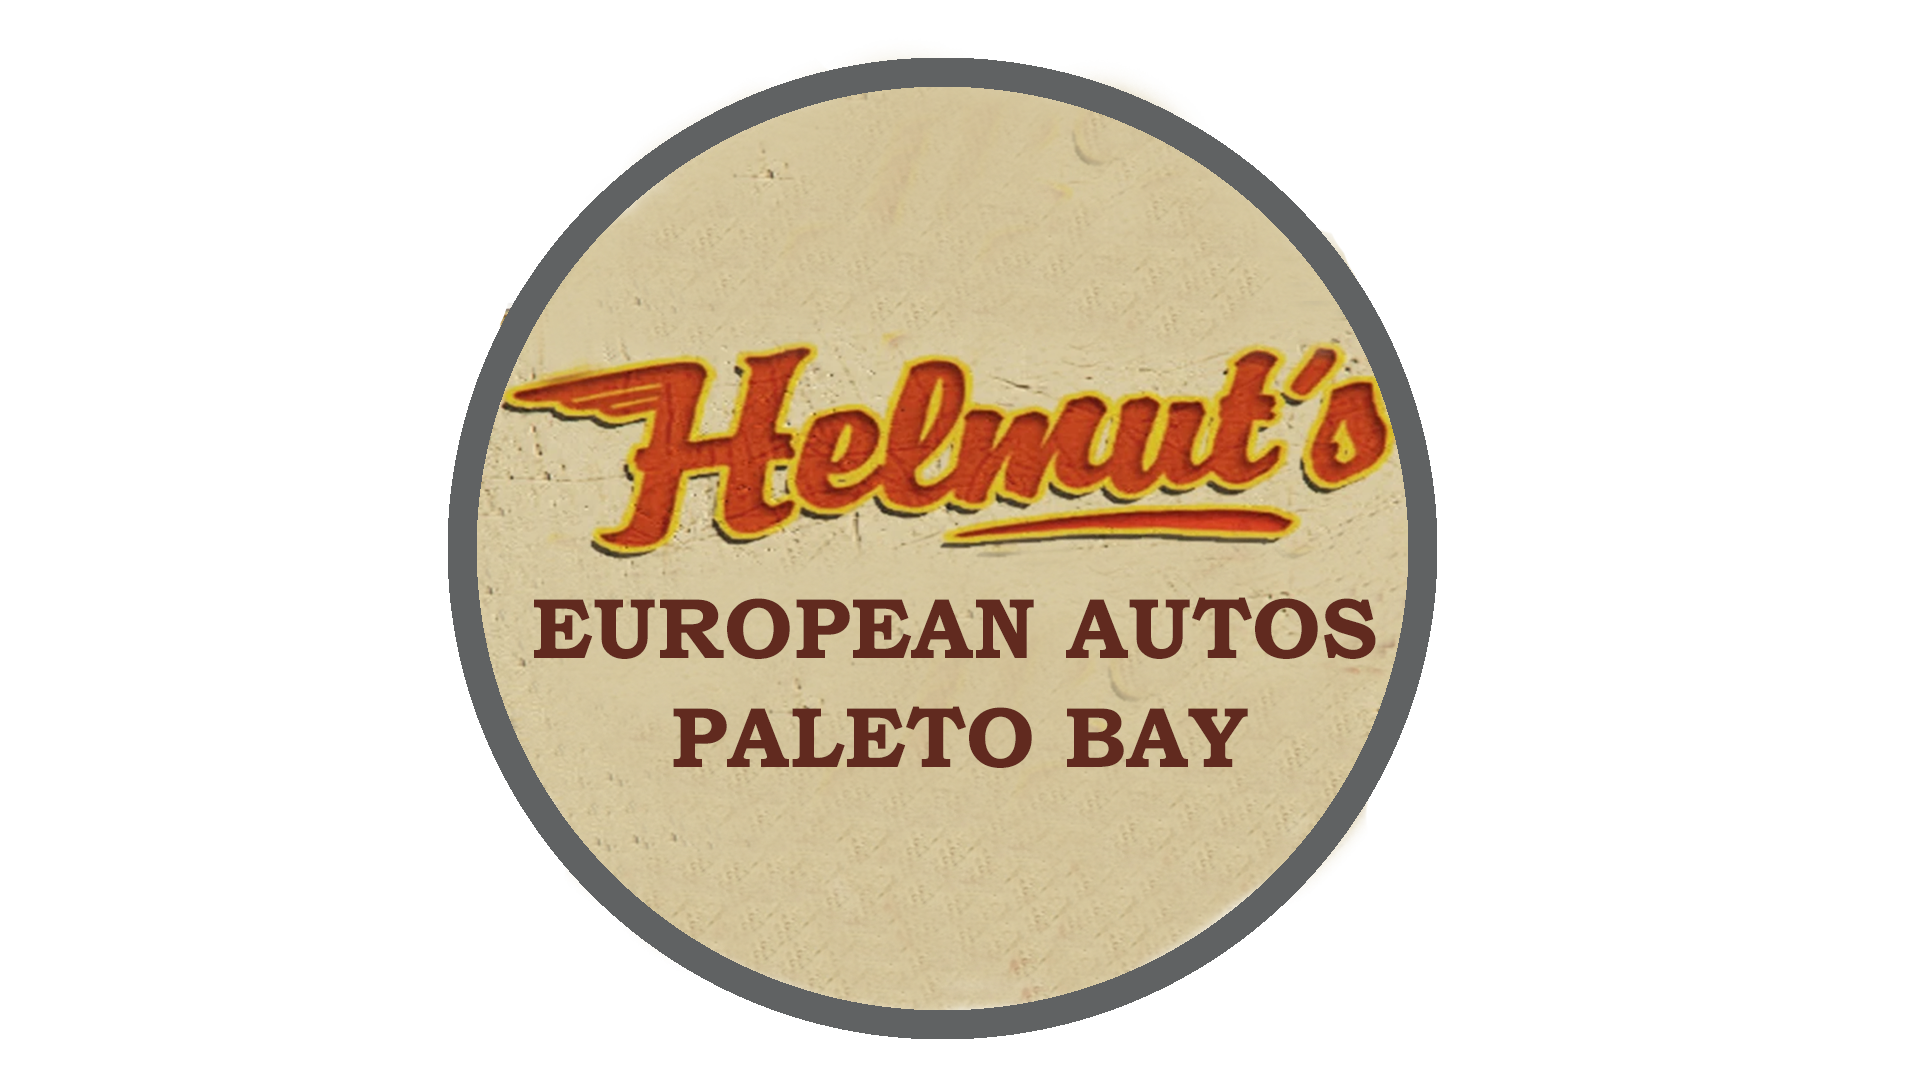 Helmut´s European Autos